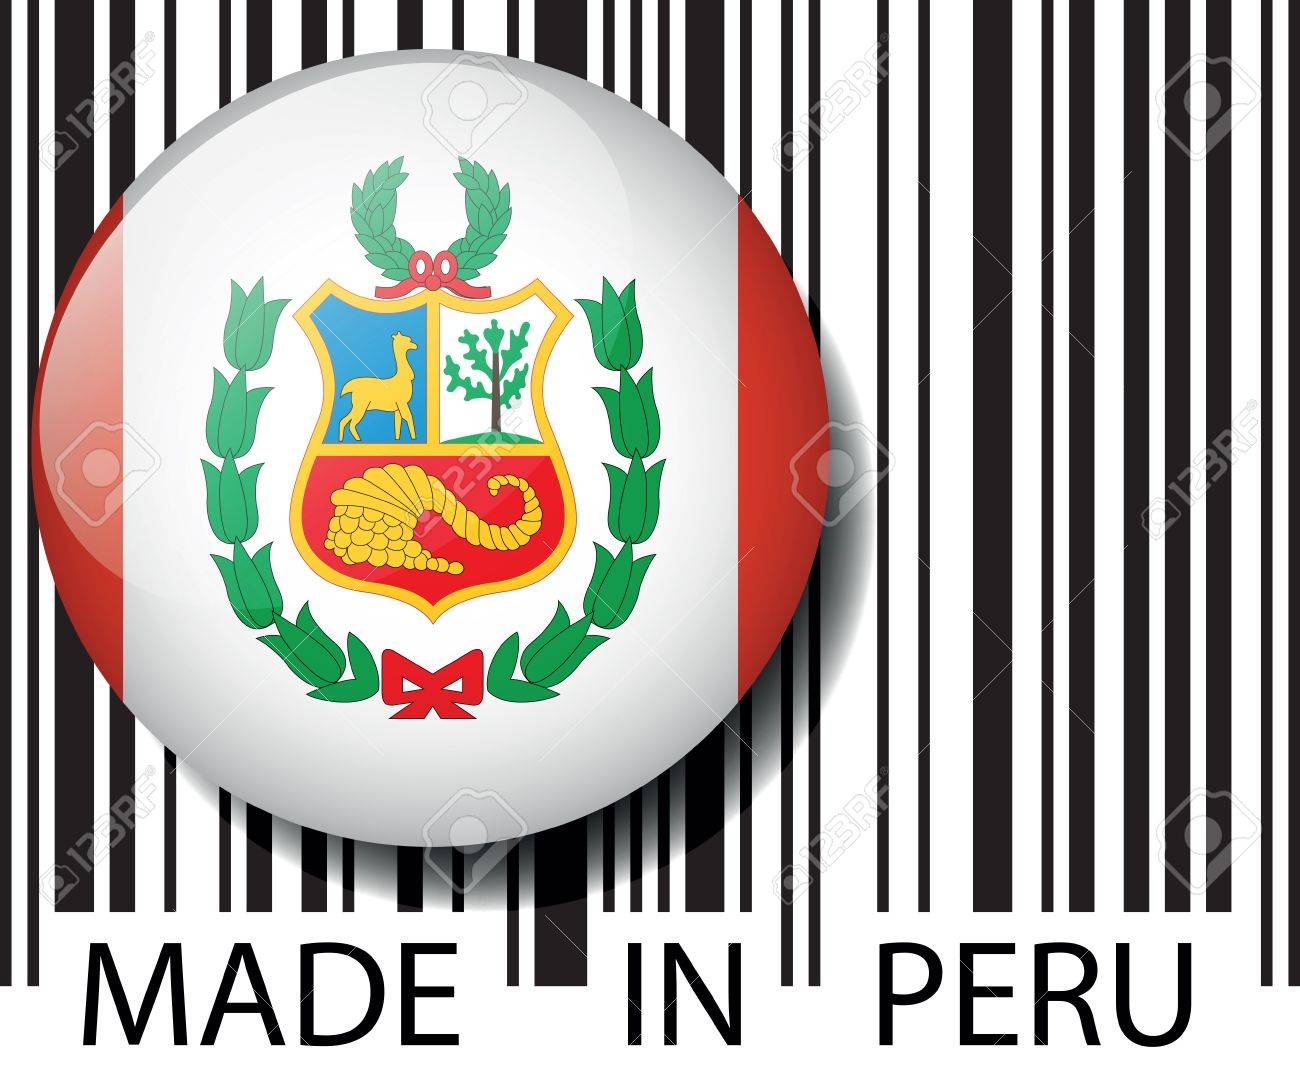 Made in Peru barcode. Vector illustration Stock Vector - 14394315